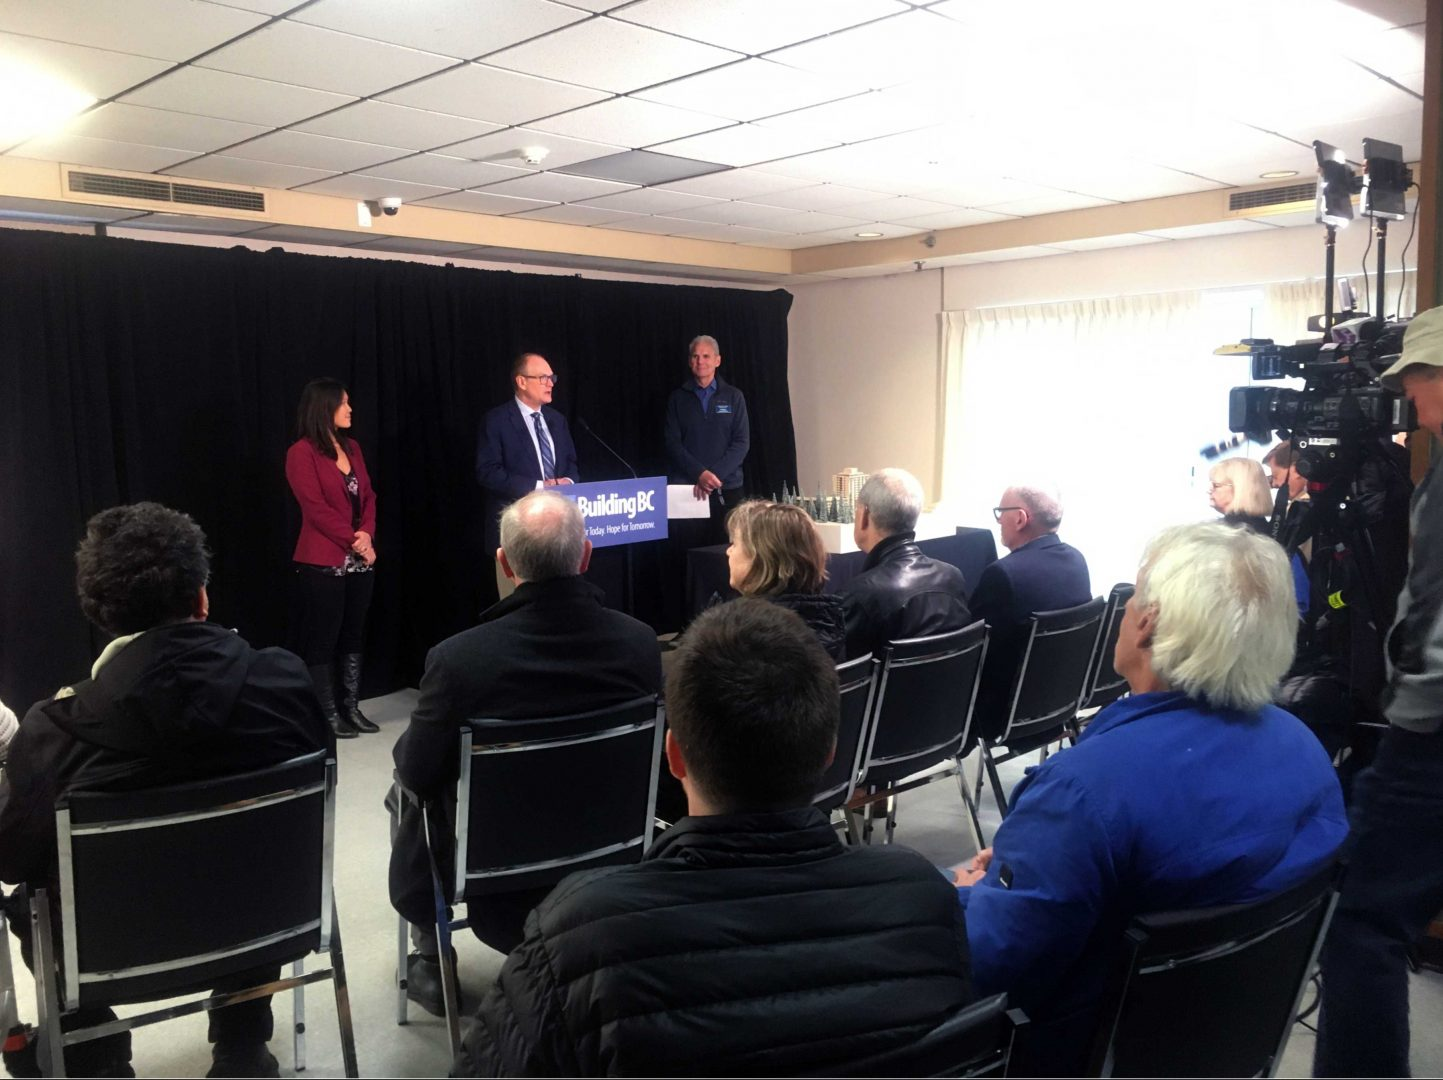 Kiwanis Media Launch three people standing at a podium with cameras facing them